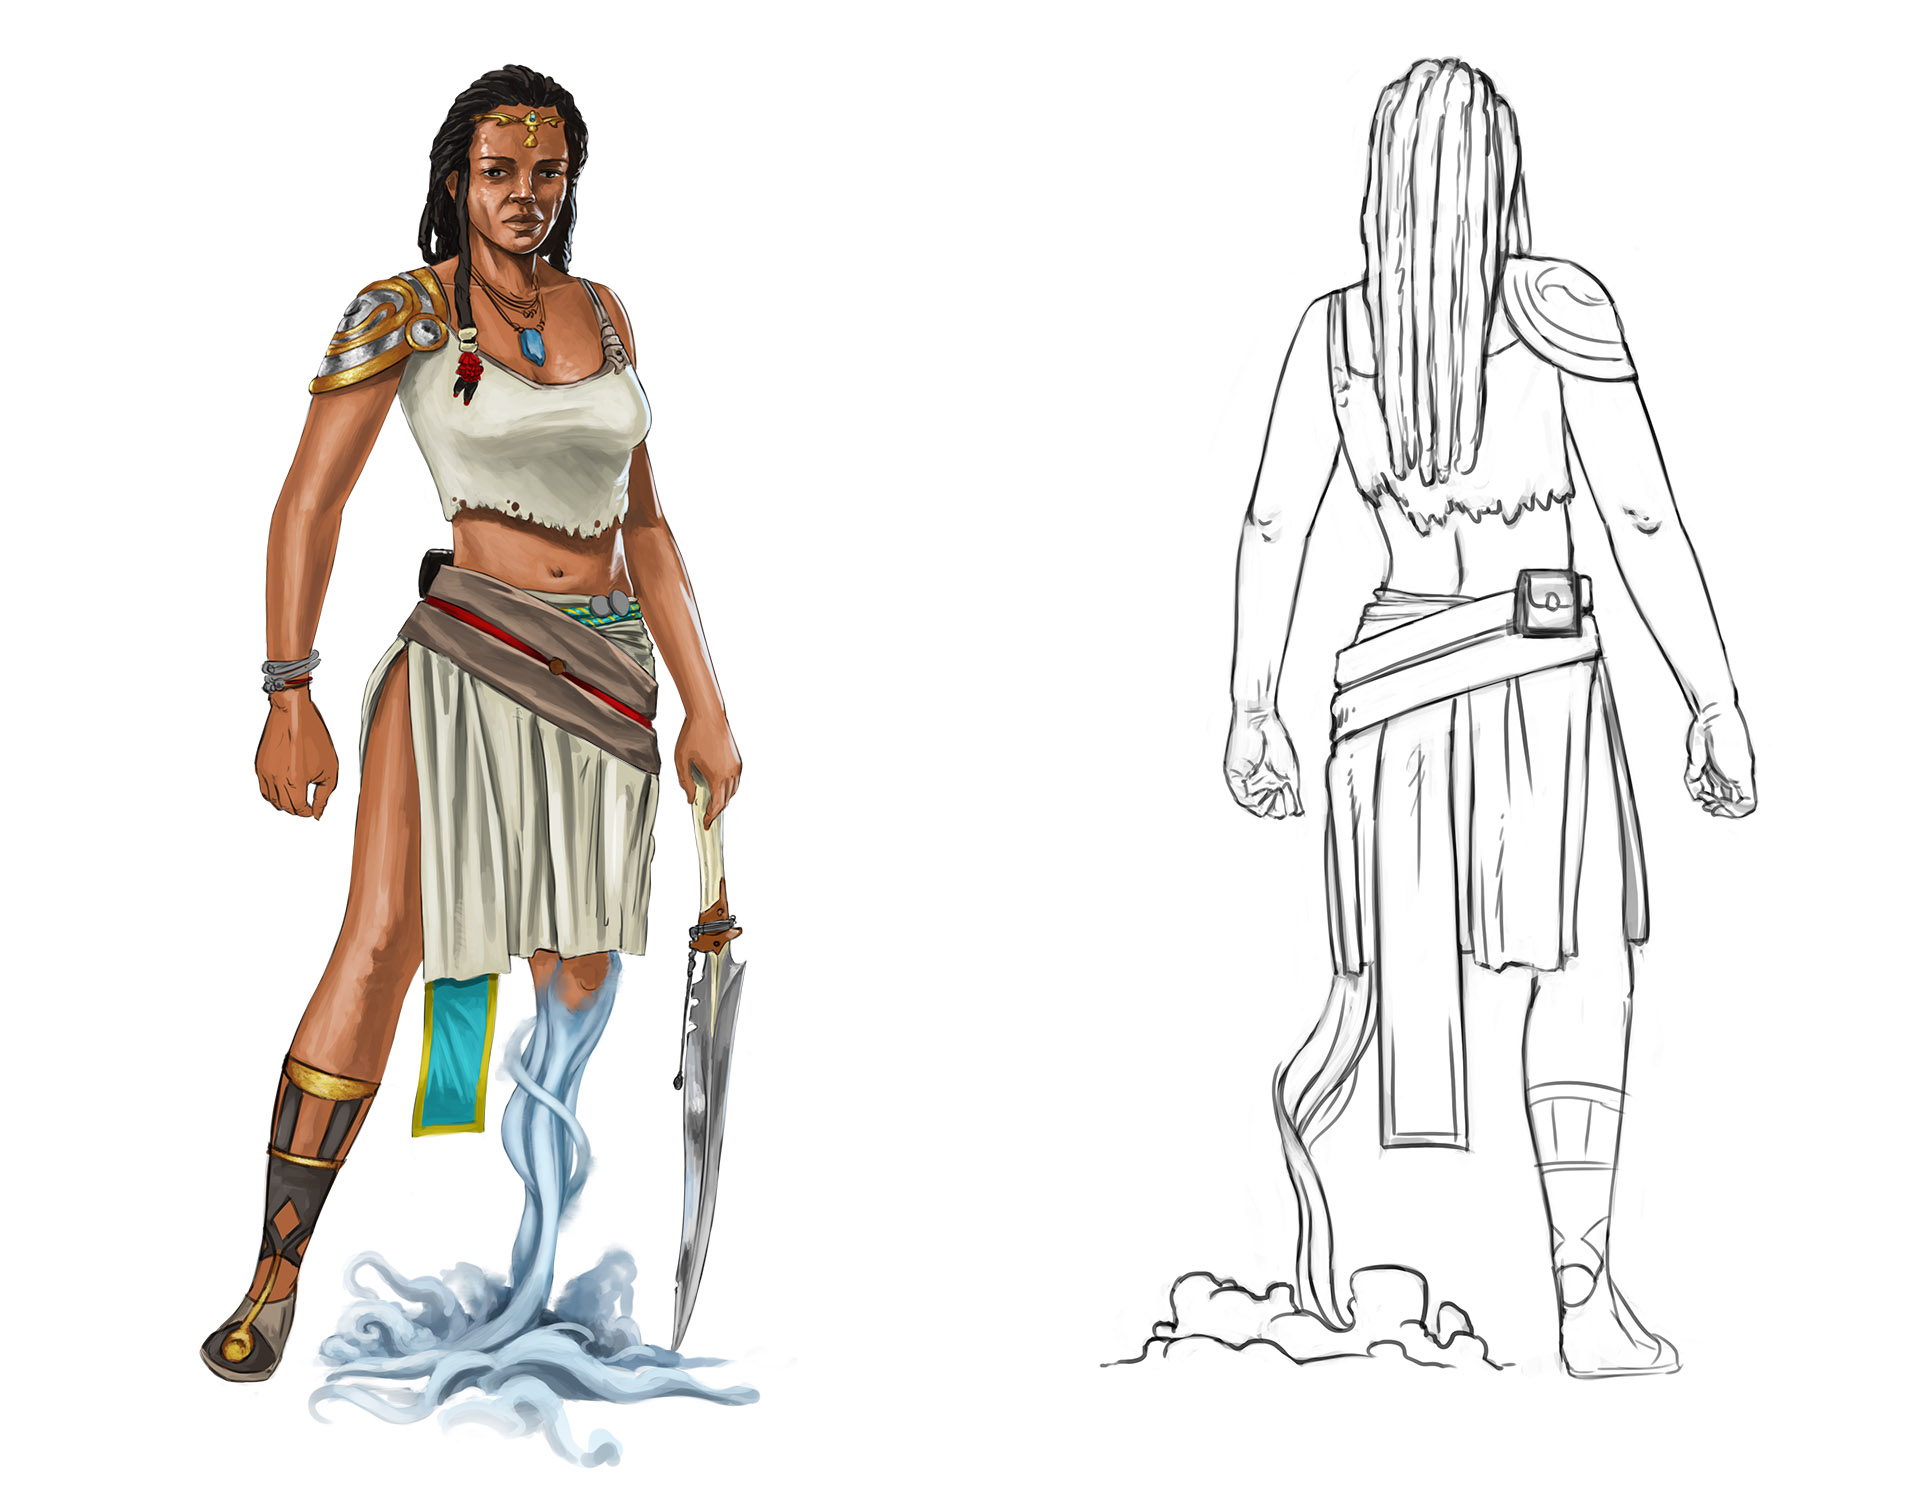 Ch5 - Personnage féminin - concept Wip